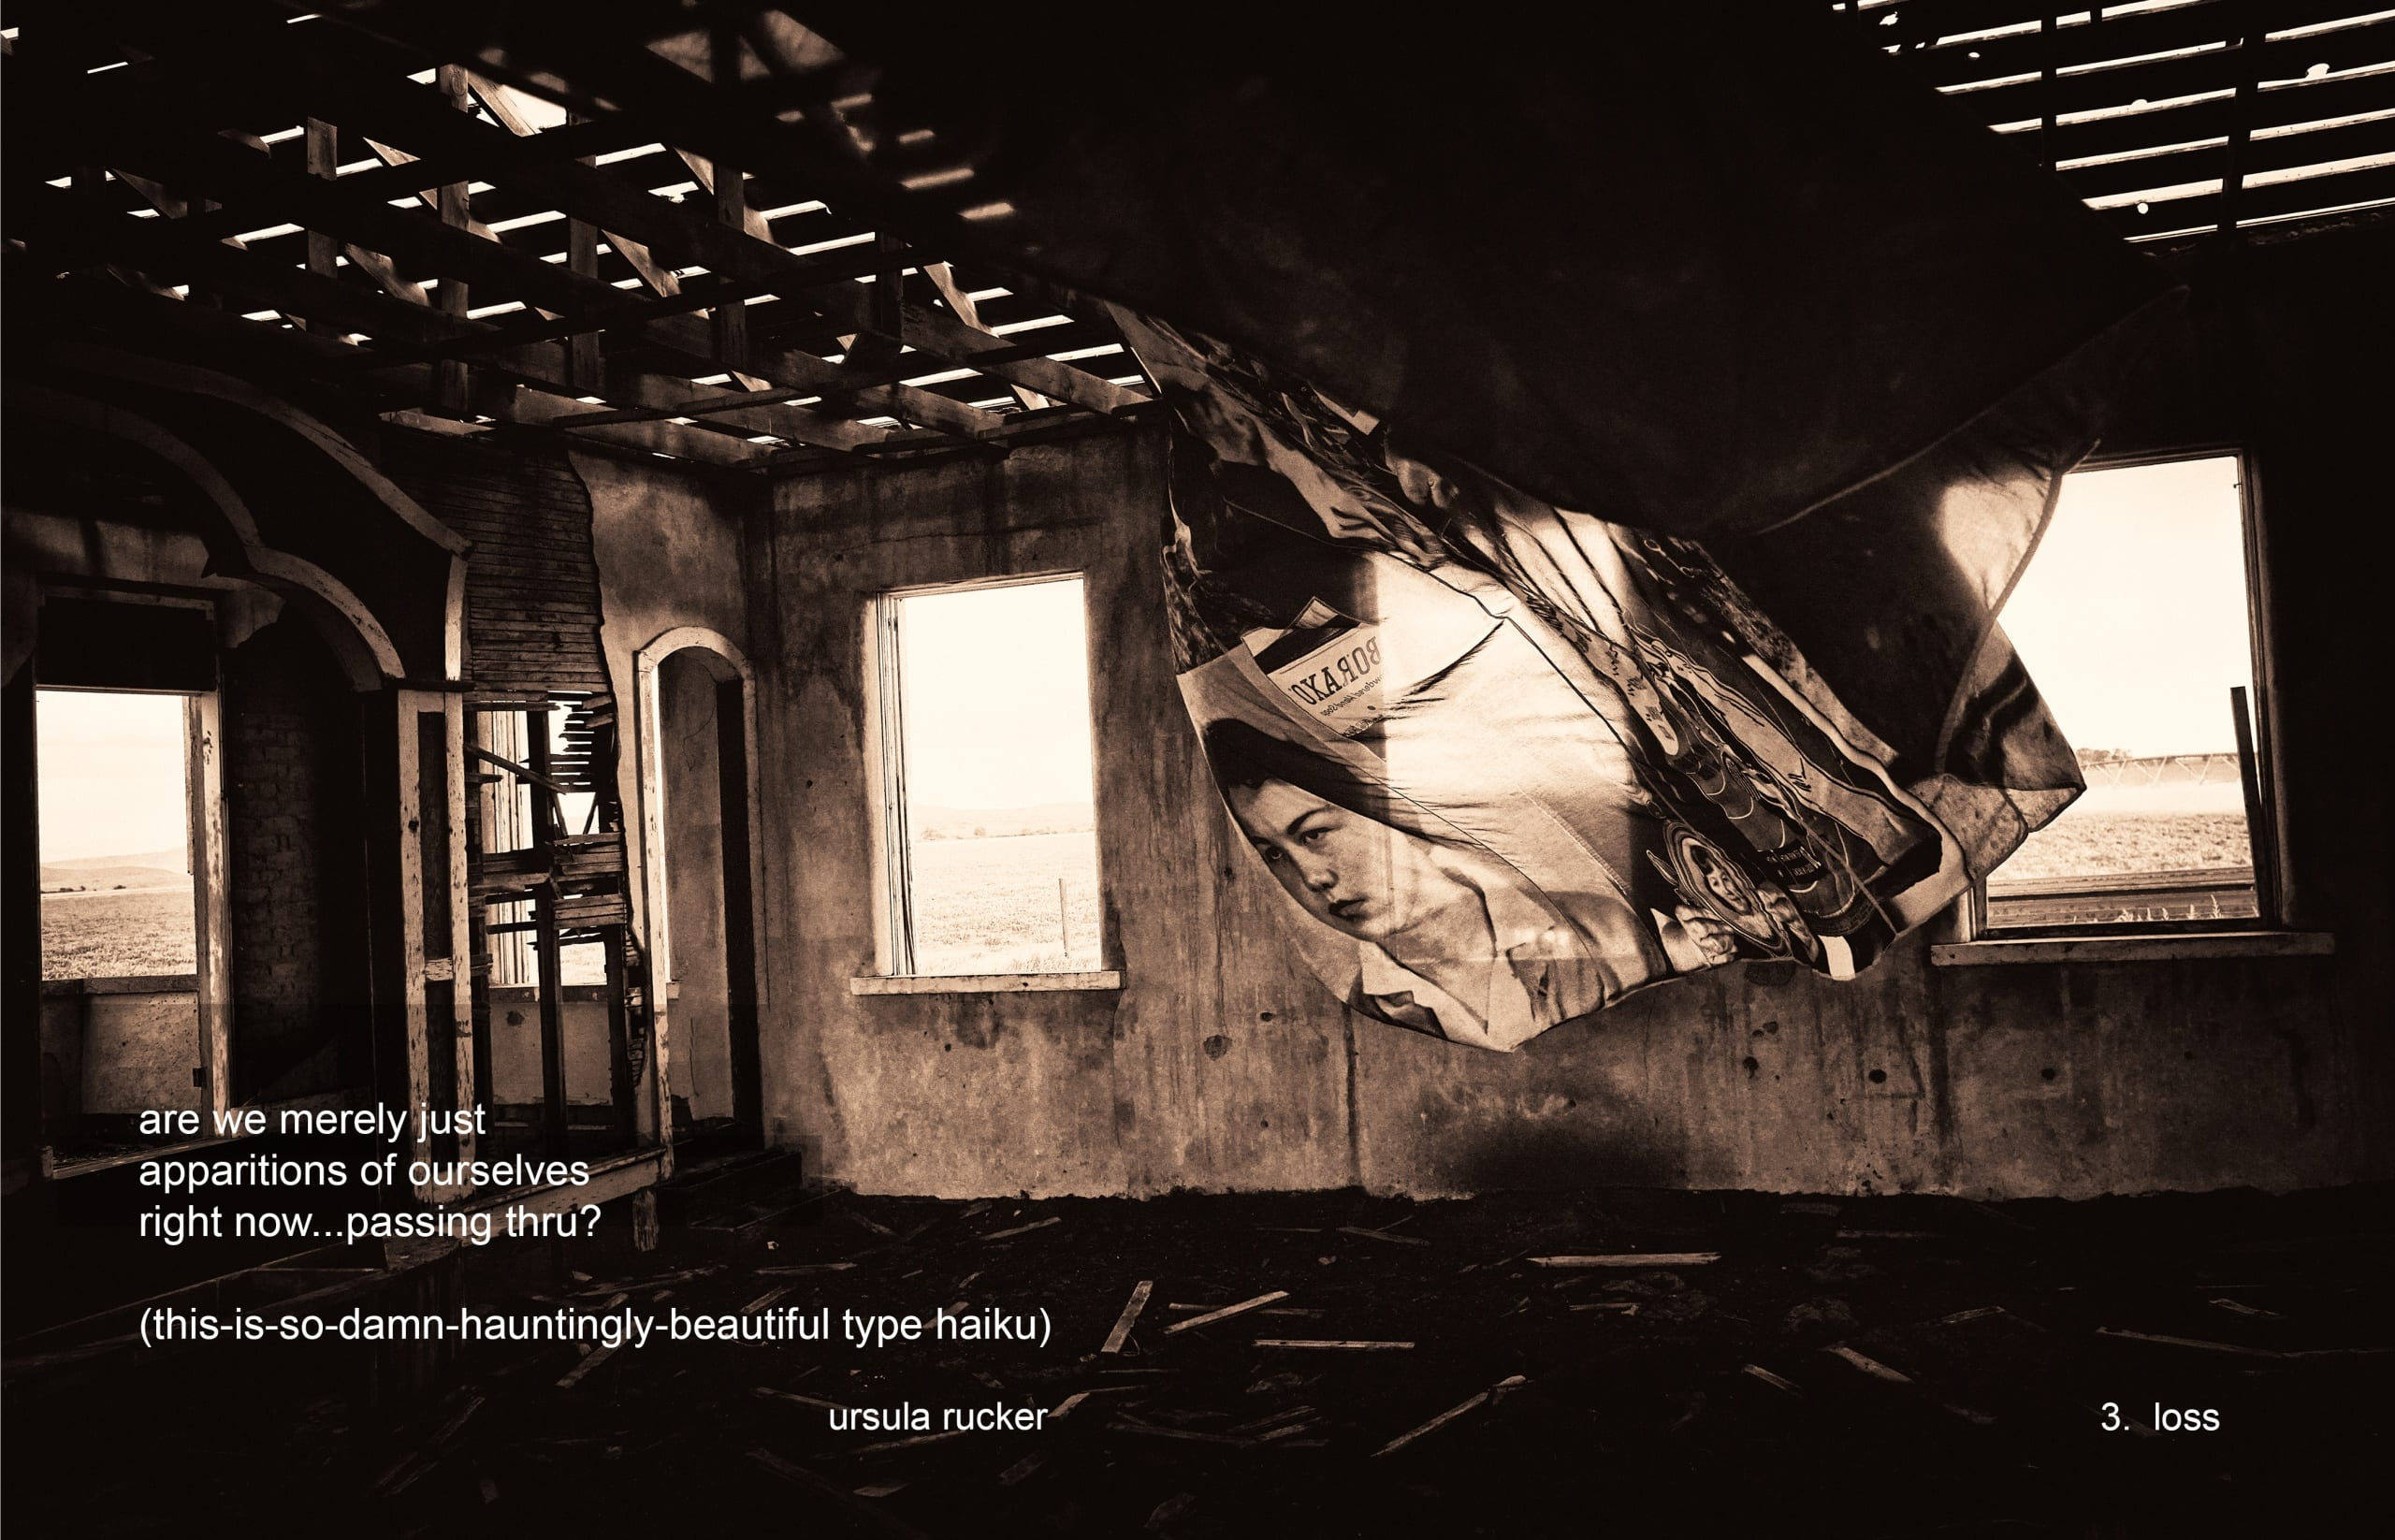 Sepia photograph taken inside an abandoned 1-room schoolhouse; a diaphanous cloth printed with images of the school's former students blows in the wind; the bottom left of the images includes a poem superimposed over the image